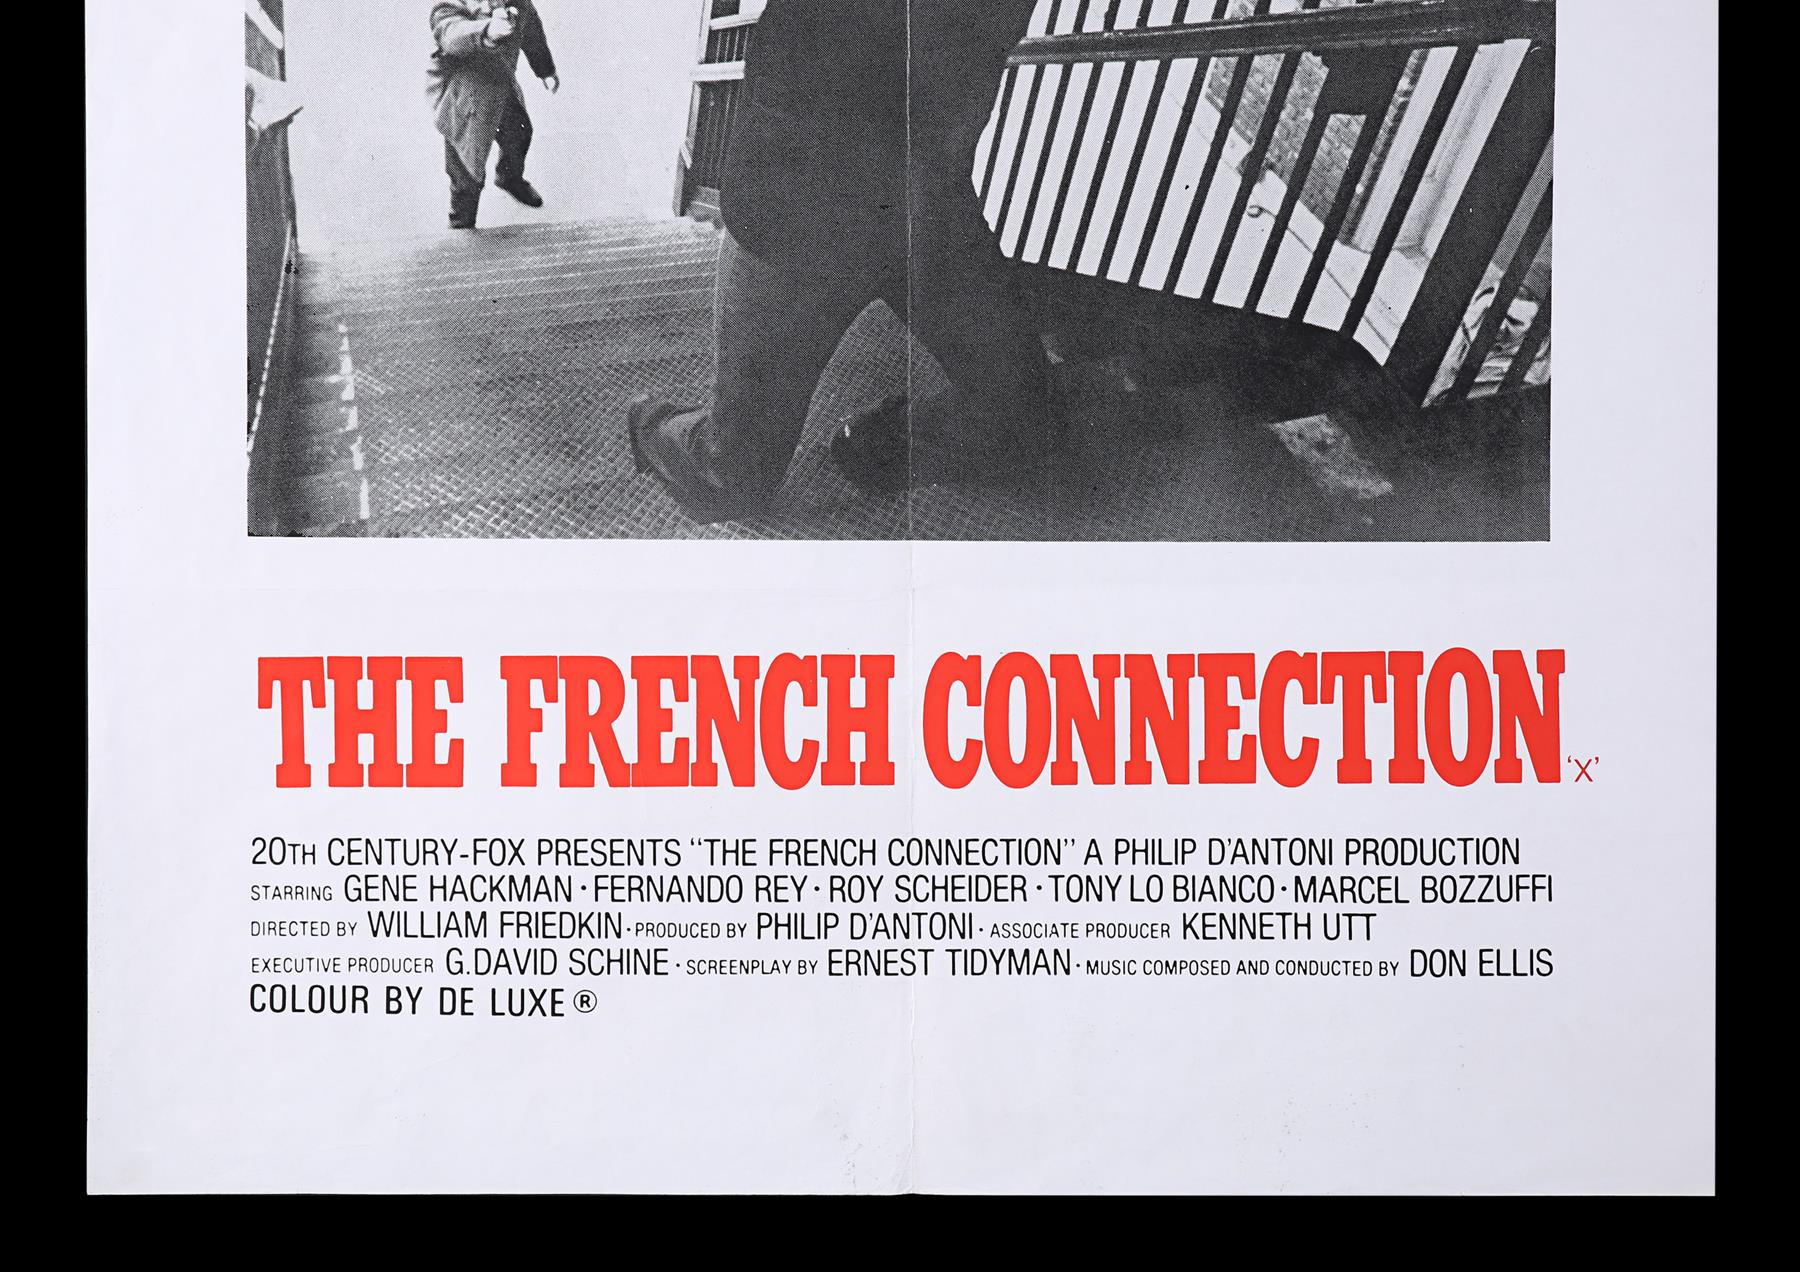 FRENCH CONNECTION (1971), CONVERSATION (1974) - UK Double Crown and US One-Sheet, 1971, 1974 - Image 8 of 8